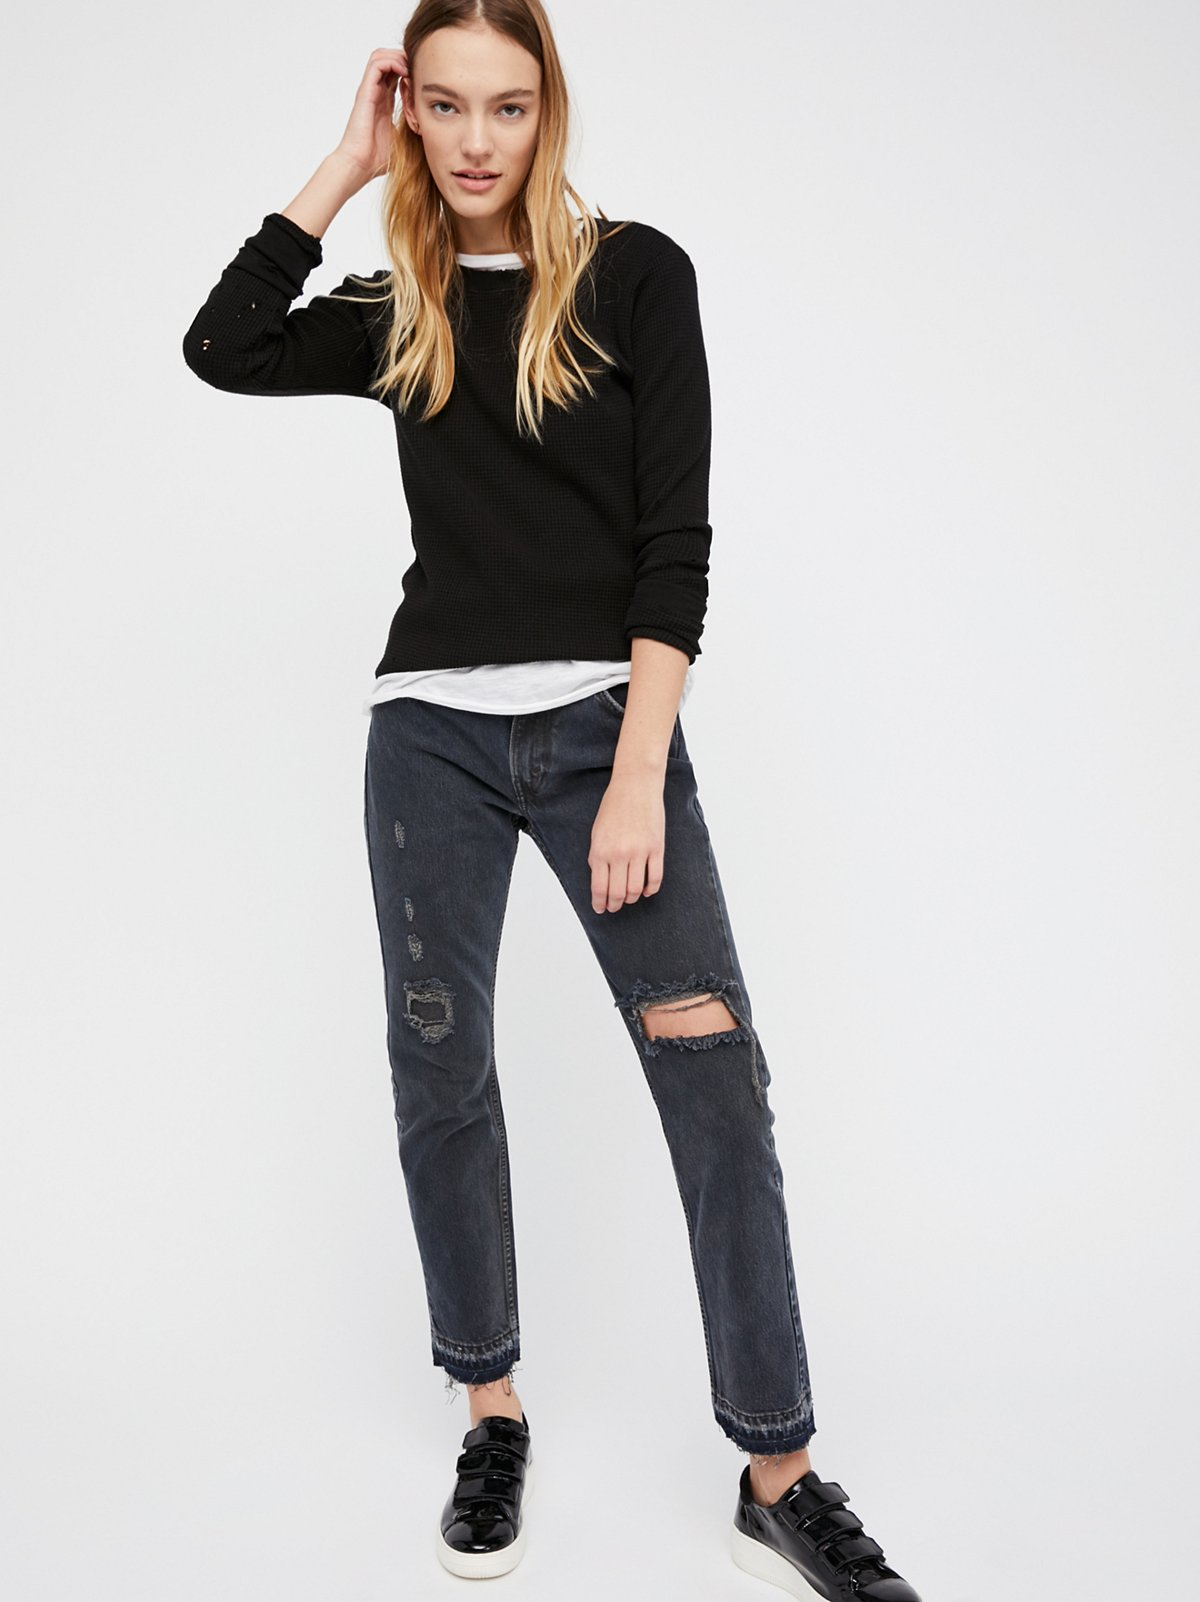 501c Distressed Crop Jeans